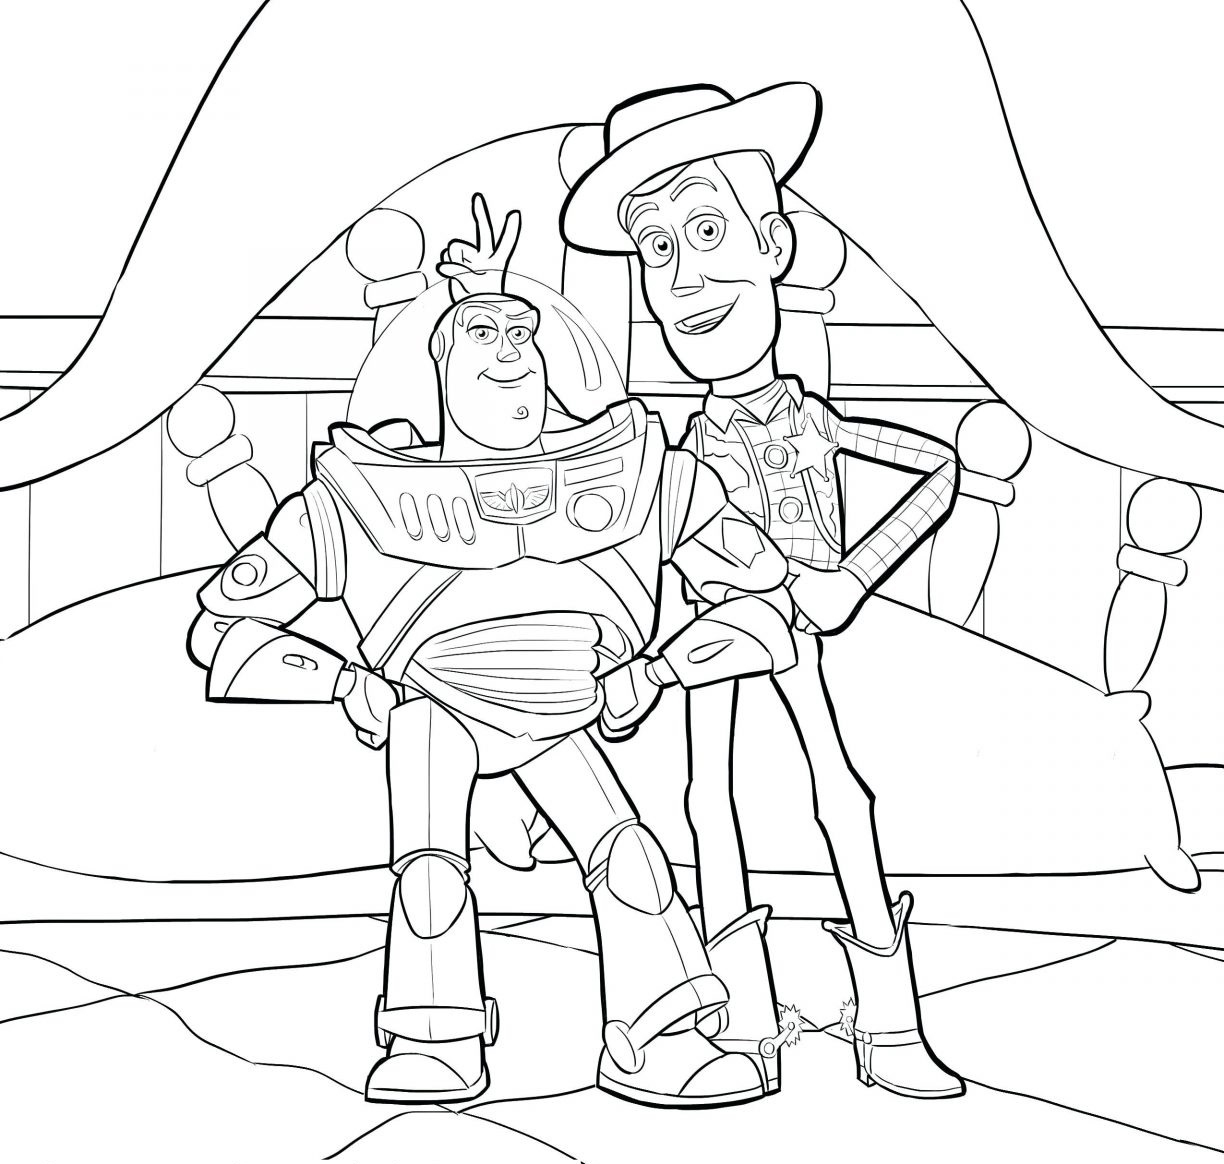 Toy Story 4 Coloring Pages Printable For Free